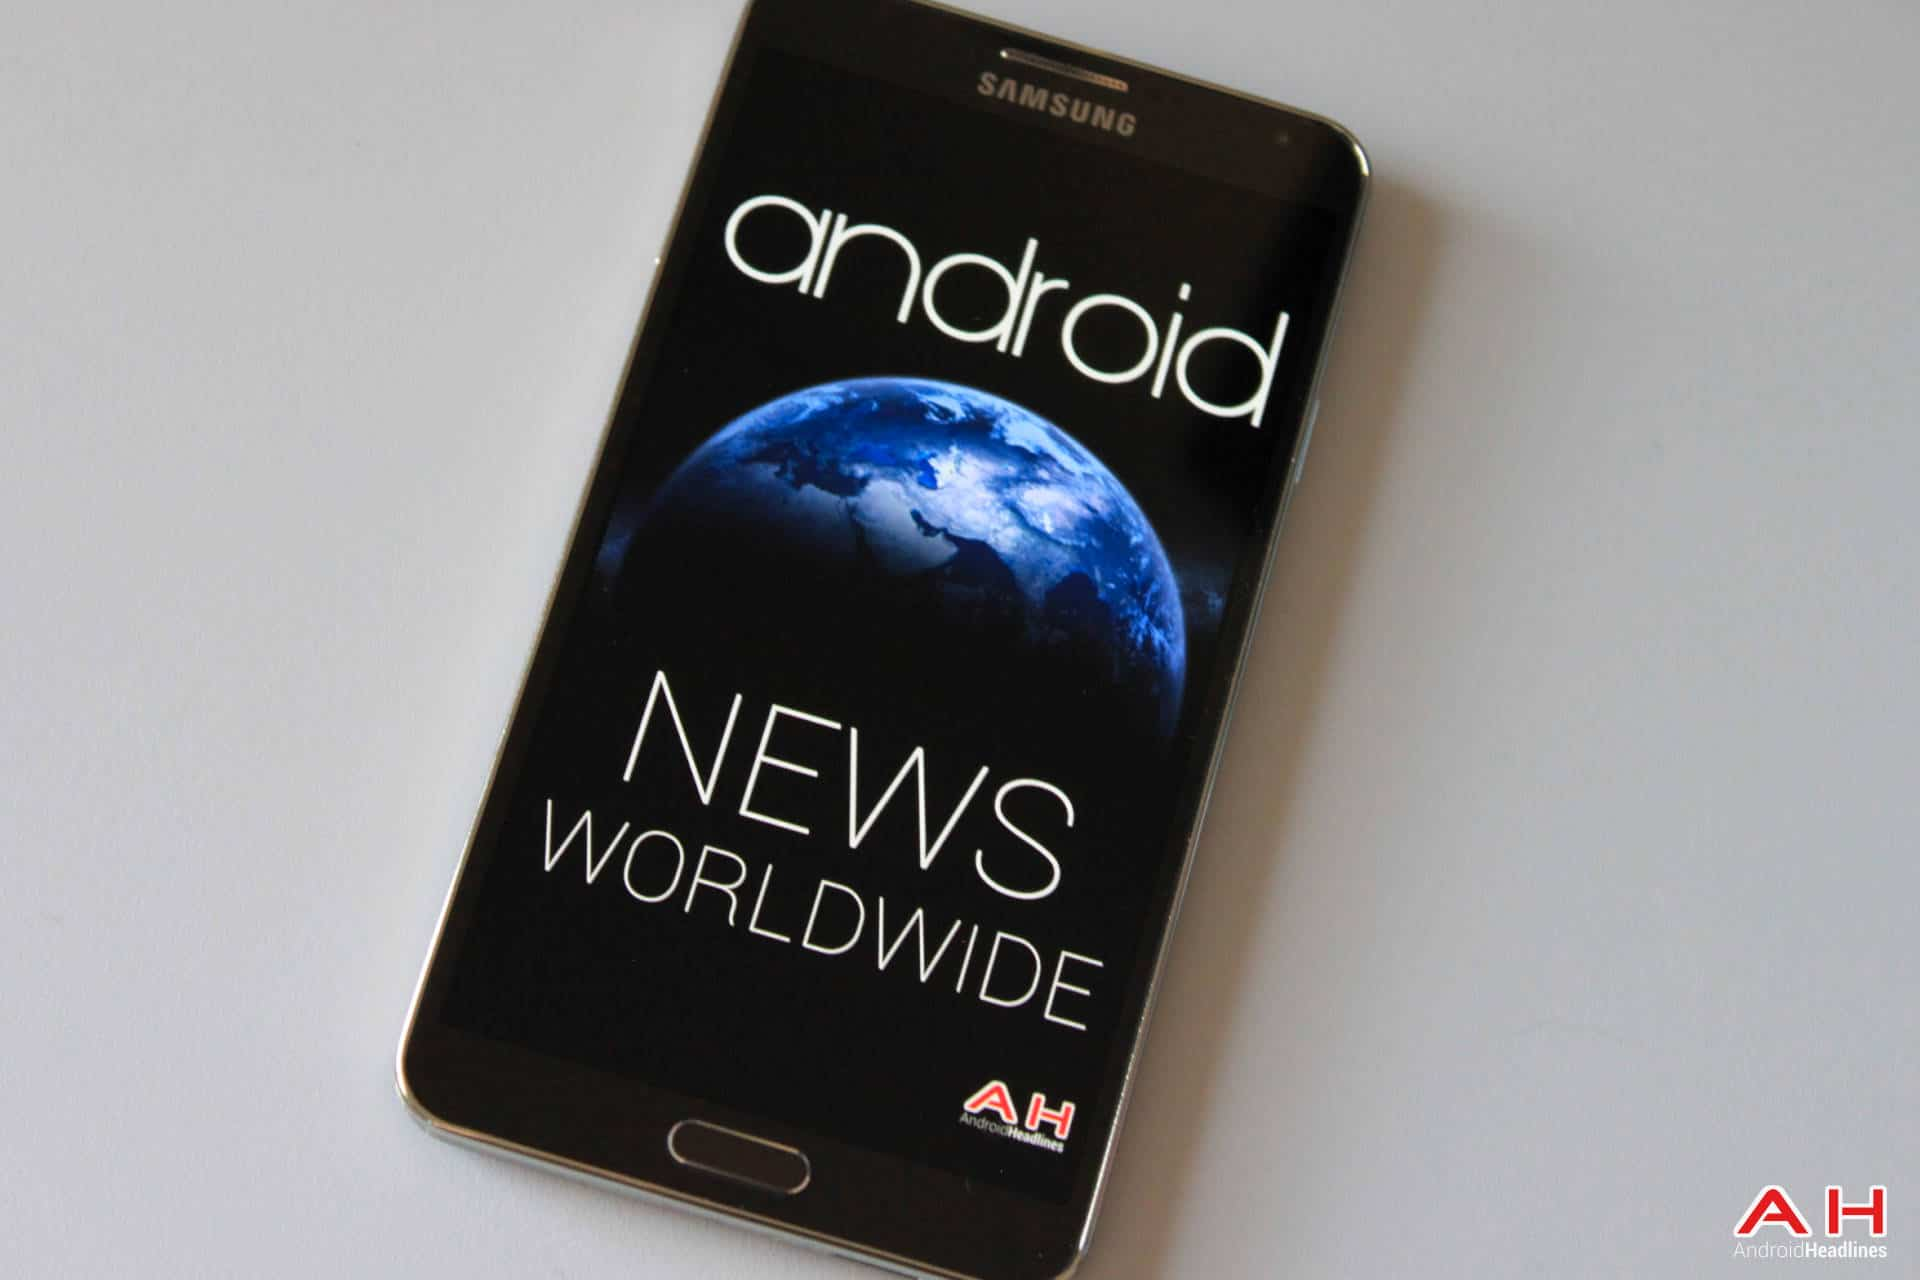 Worldwide Android News 07/28/14 – LG G3 S, Transport for London, Google Flight Search and More!